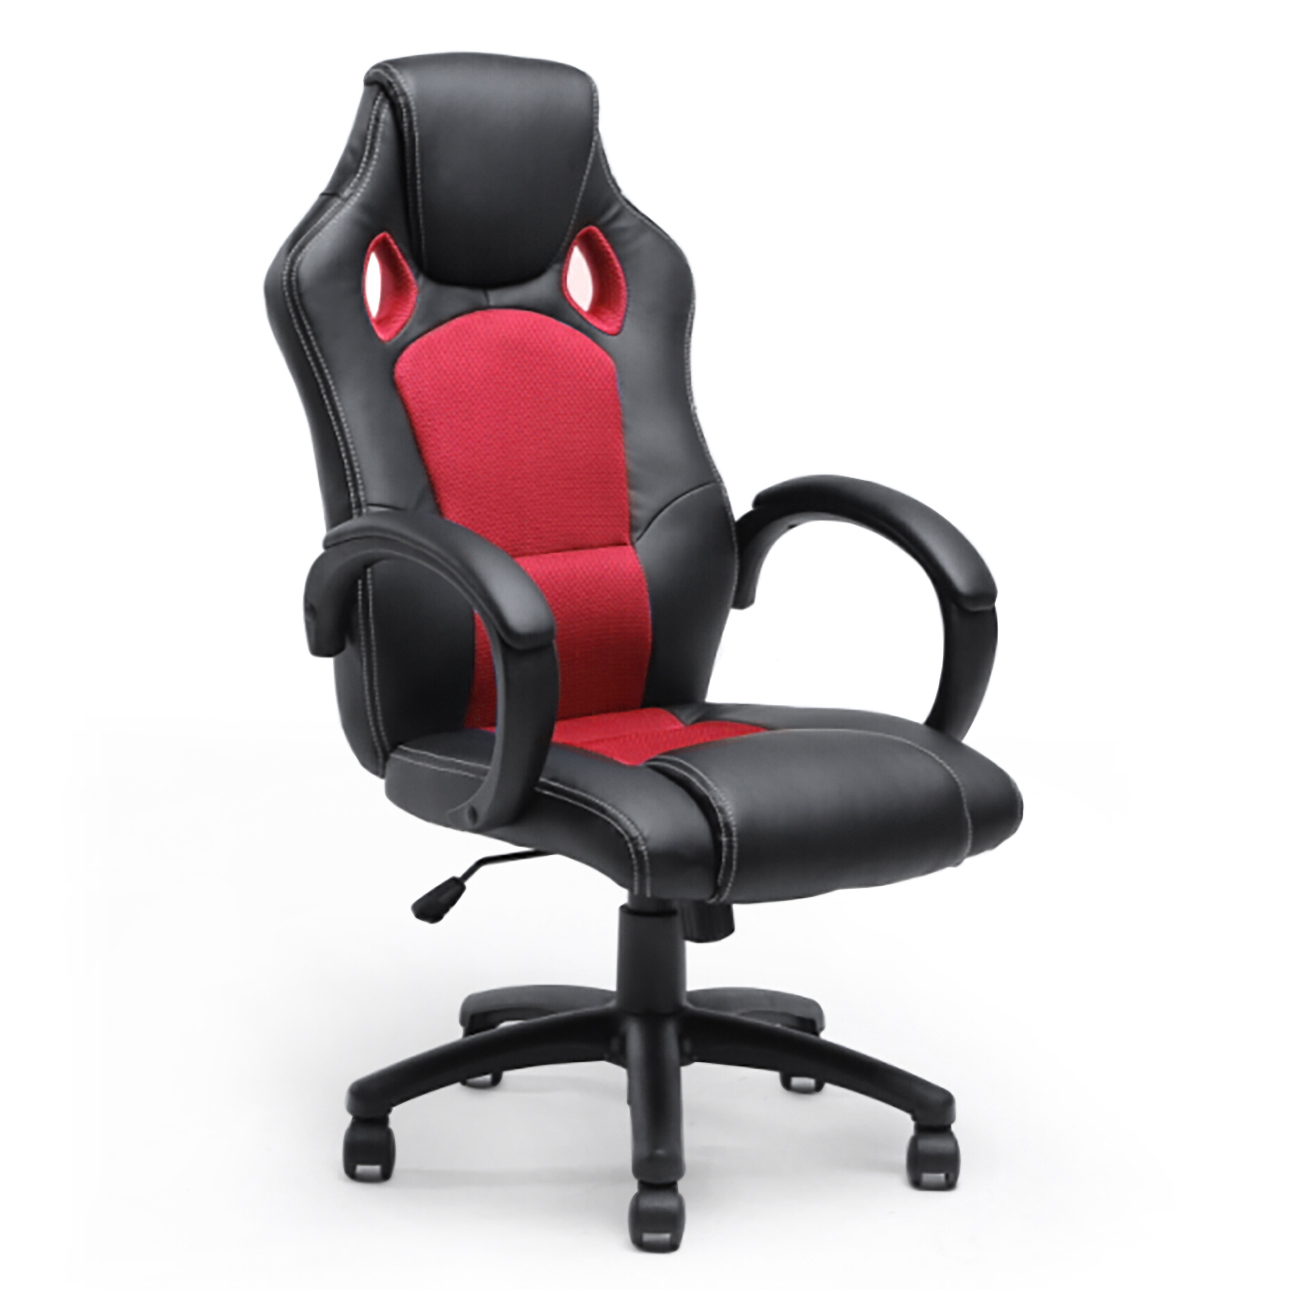 gamer computer chair ergonomic desk high back race car style bucket seat office